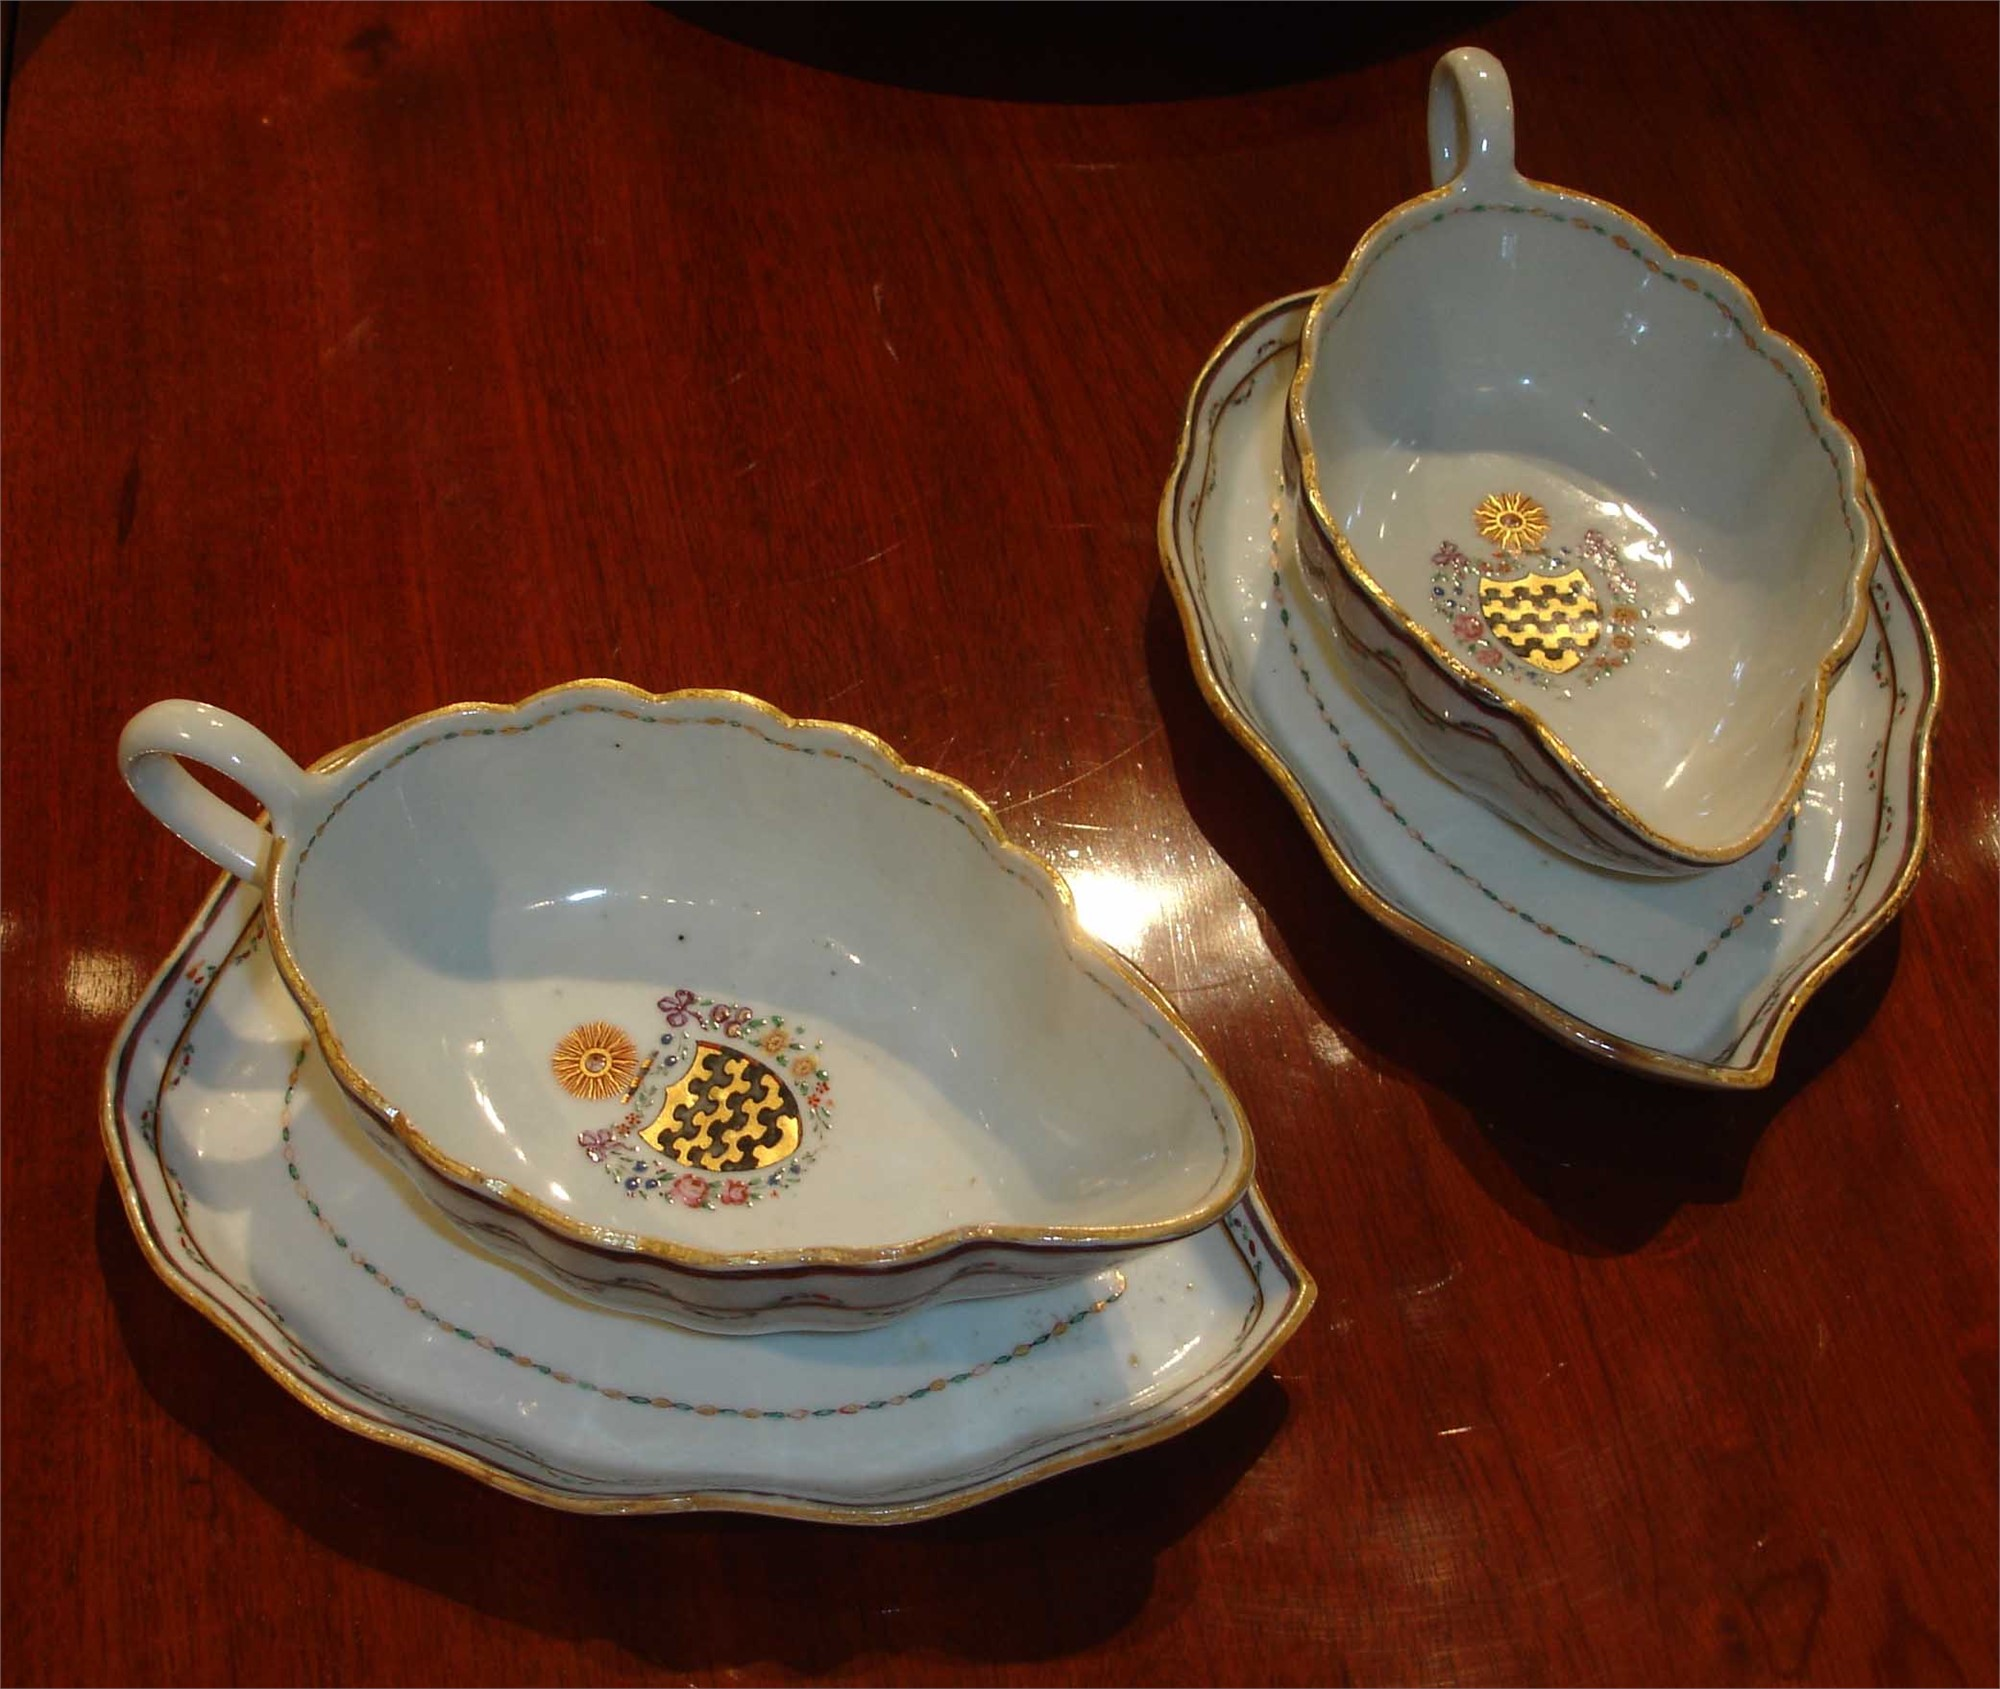 PAIR OF ARMORIAL GRAVY BOATS ON STANDS WITH ARMS OF BLUNT